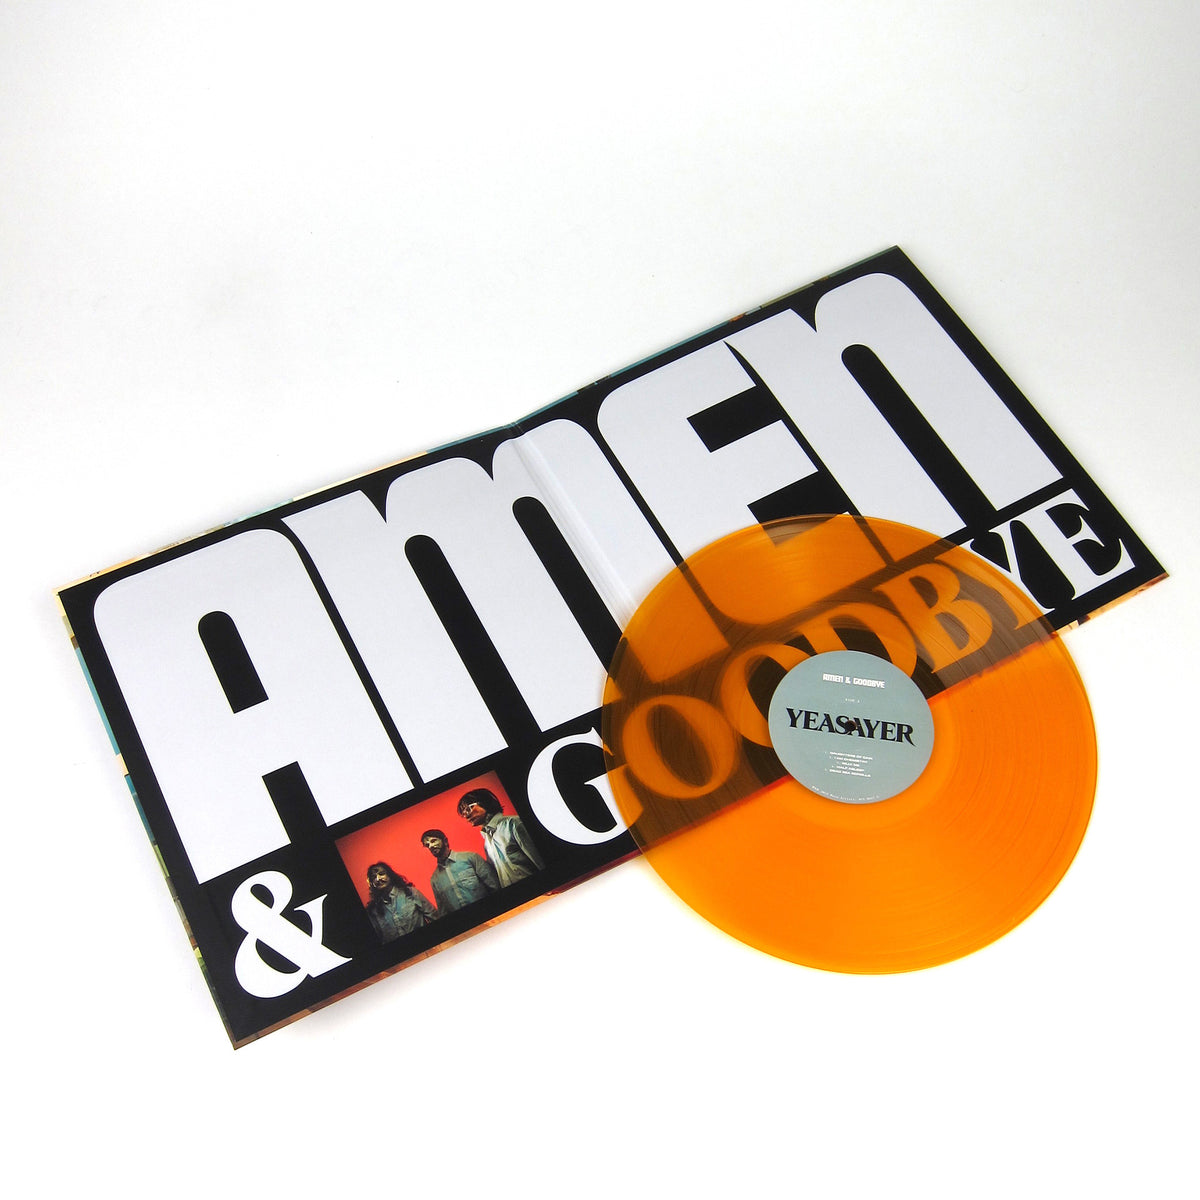 Yeasayer: Amen & Goodbye (Indie Exclusive Colored Vinyl) Vinyl LP